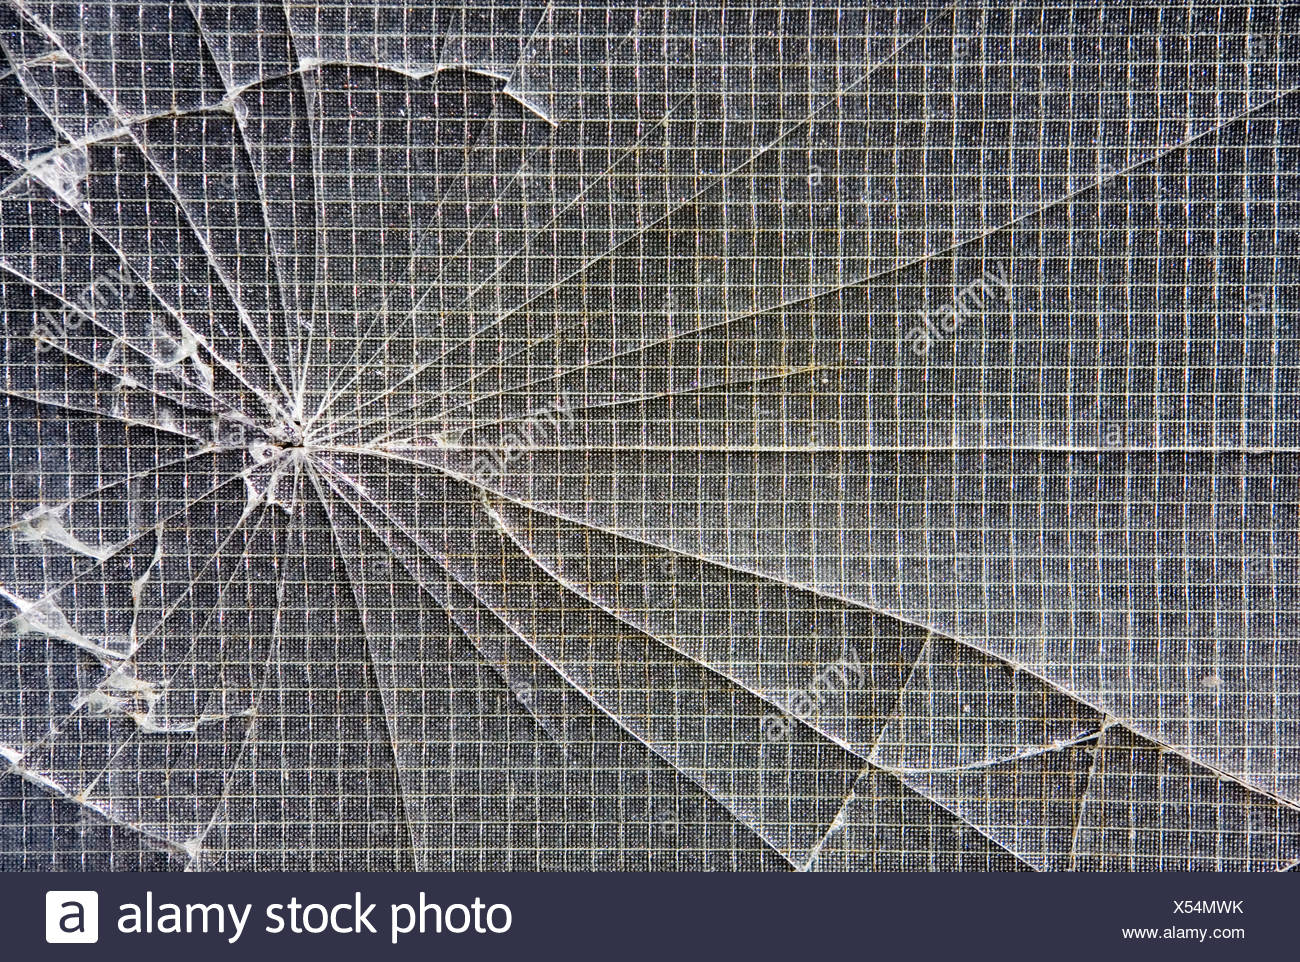 Wire Glass Stock Photos & Wire Glass Stock Images - Alamy